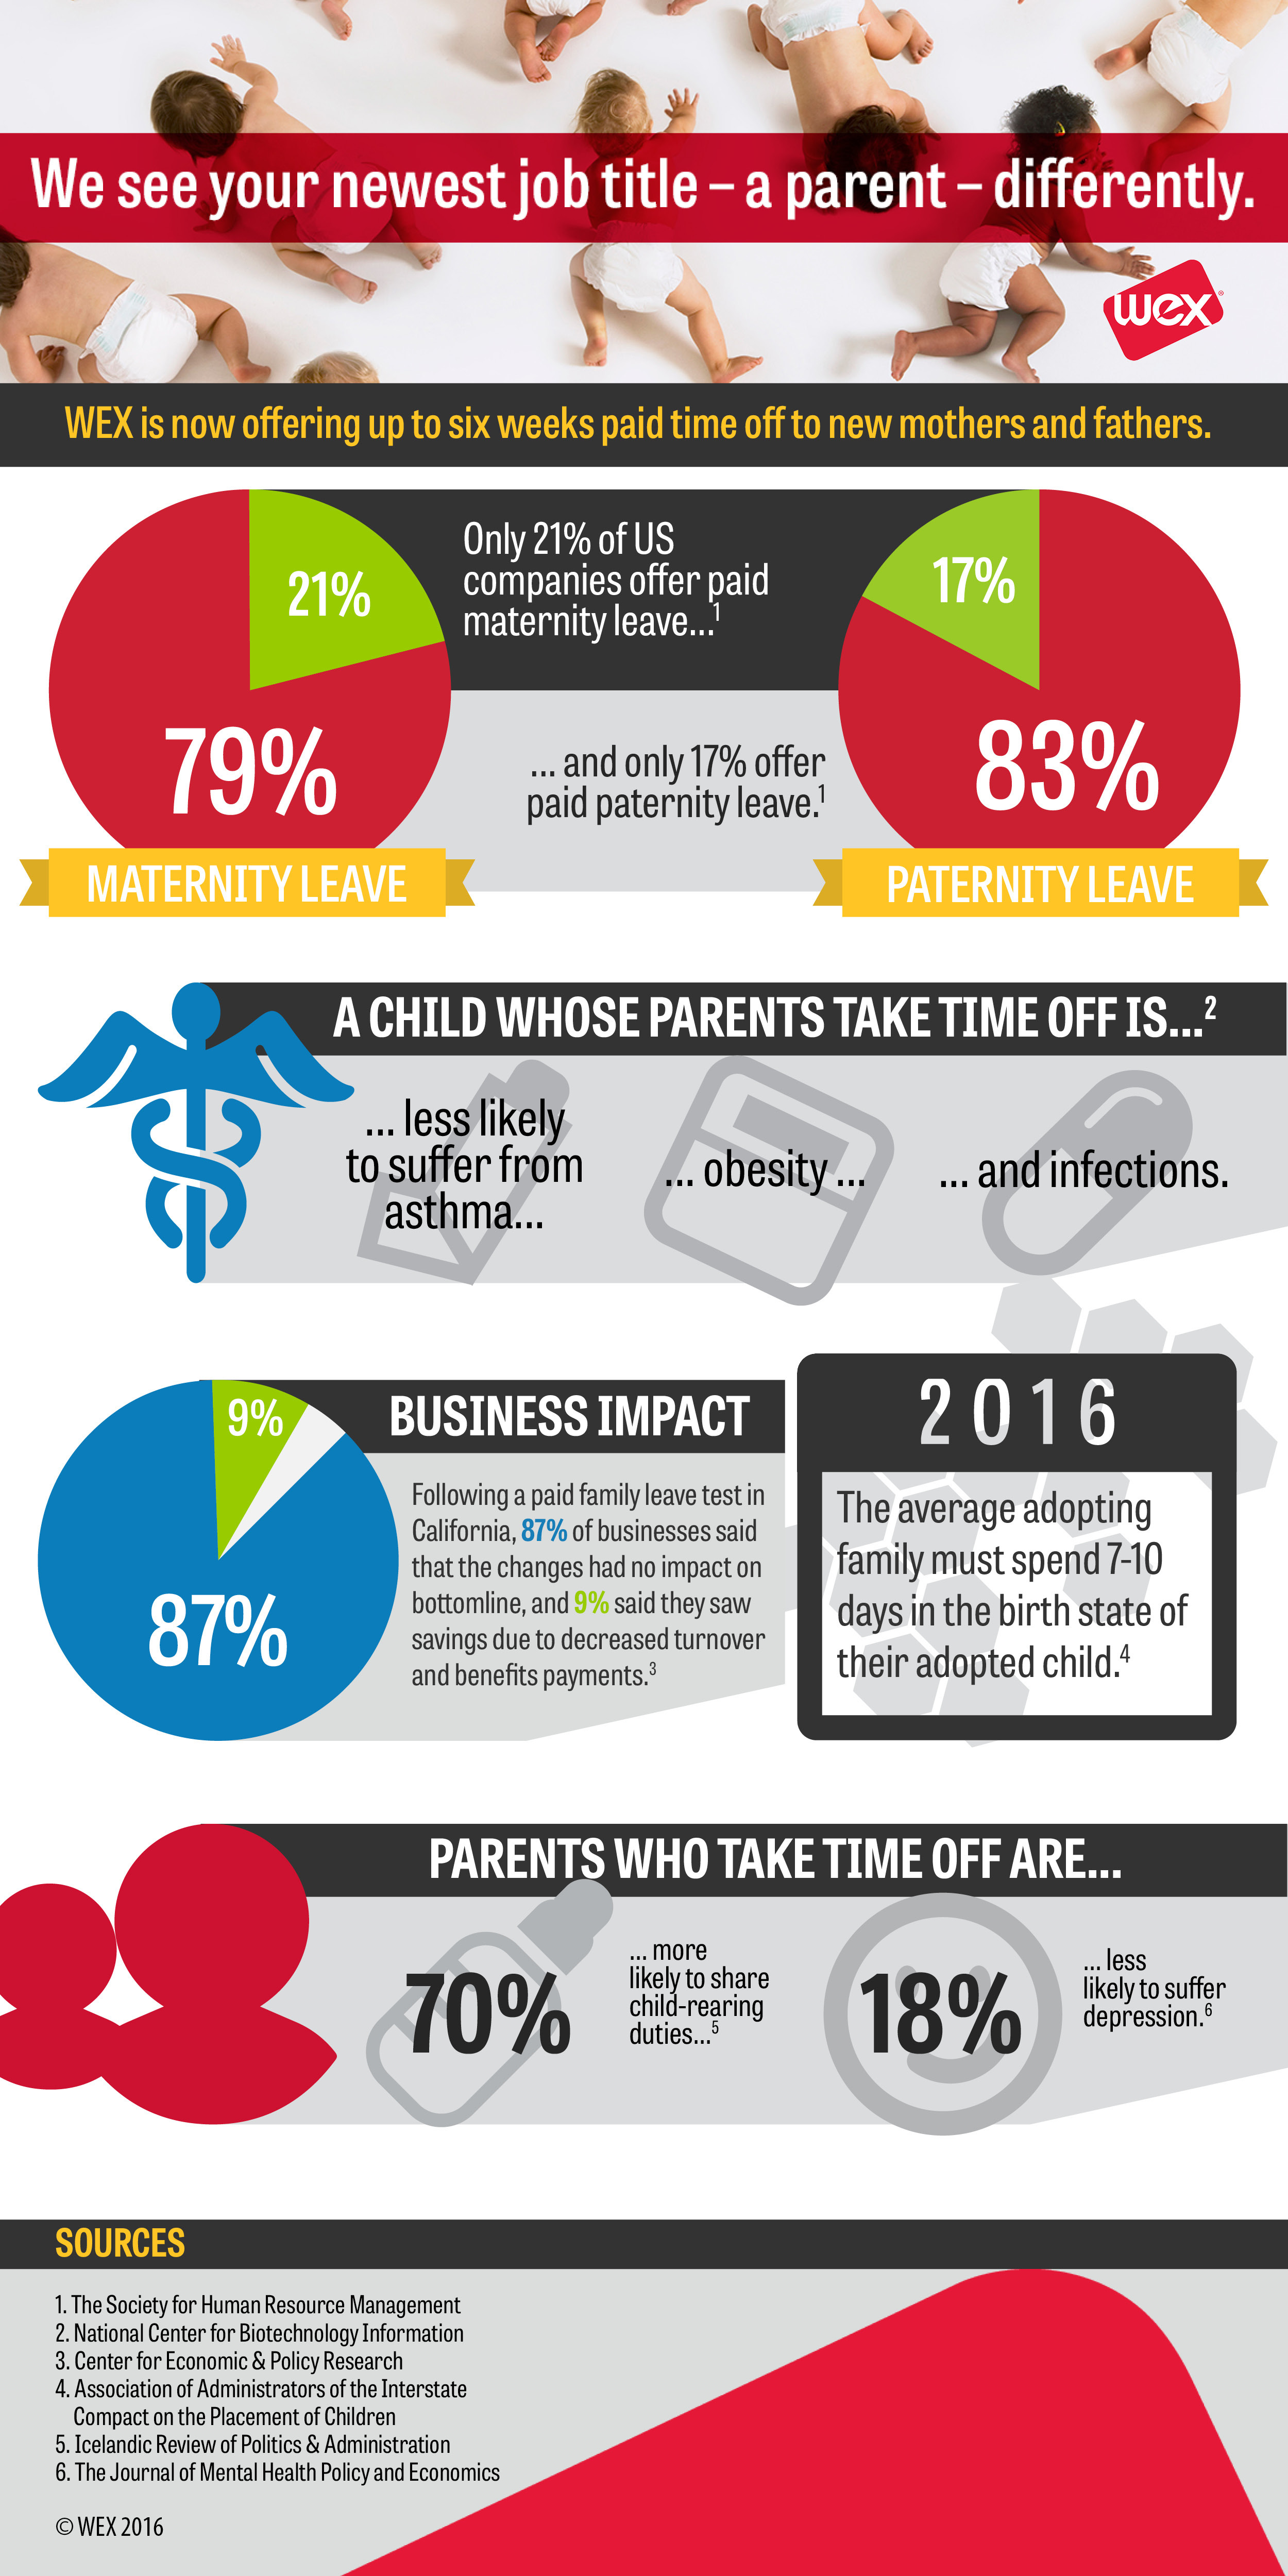 WEX Inc. Expands Parental Leave Policy in the United States ...